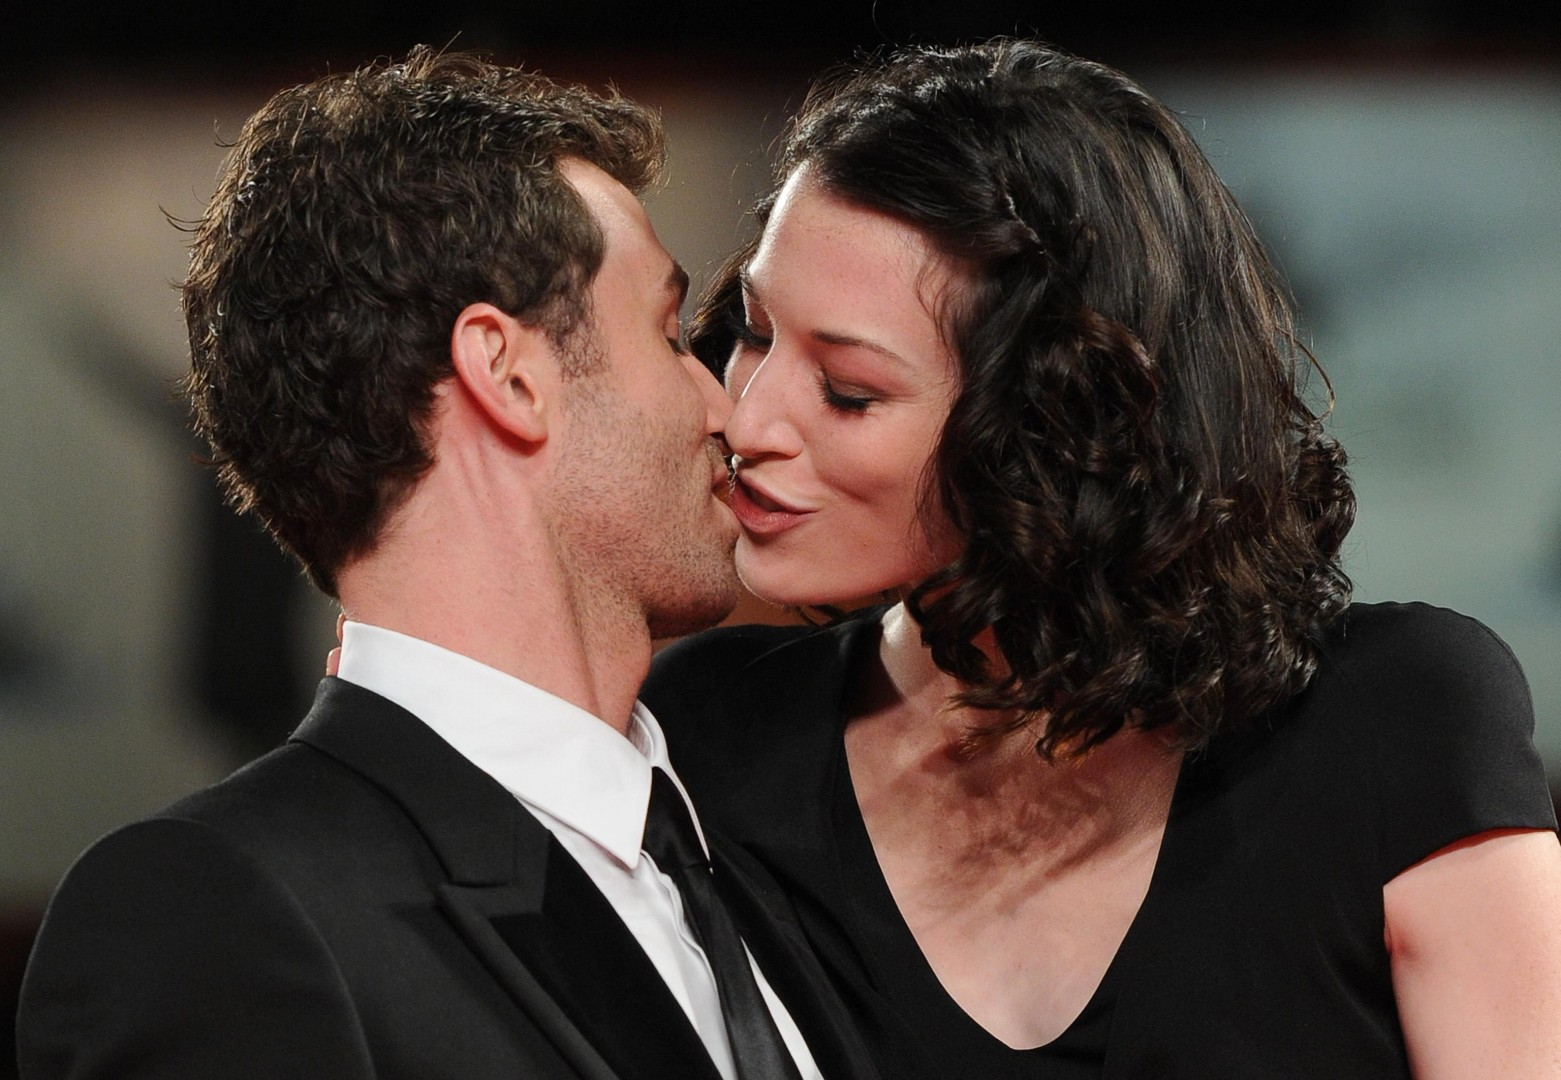 Stoya in njen nekdanji partner James Deen (foto: epa).